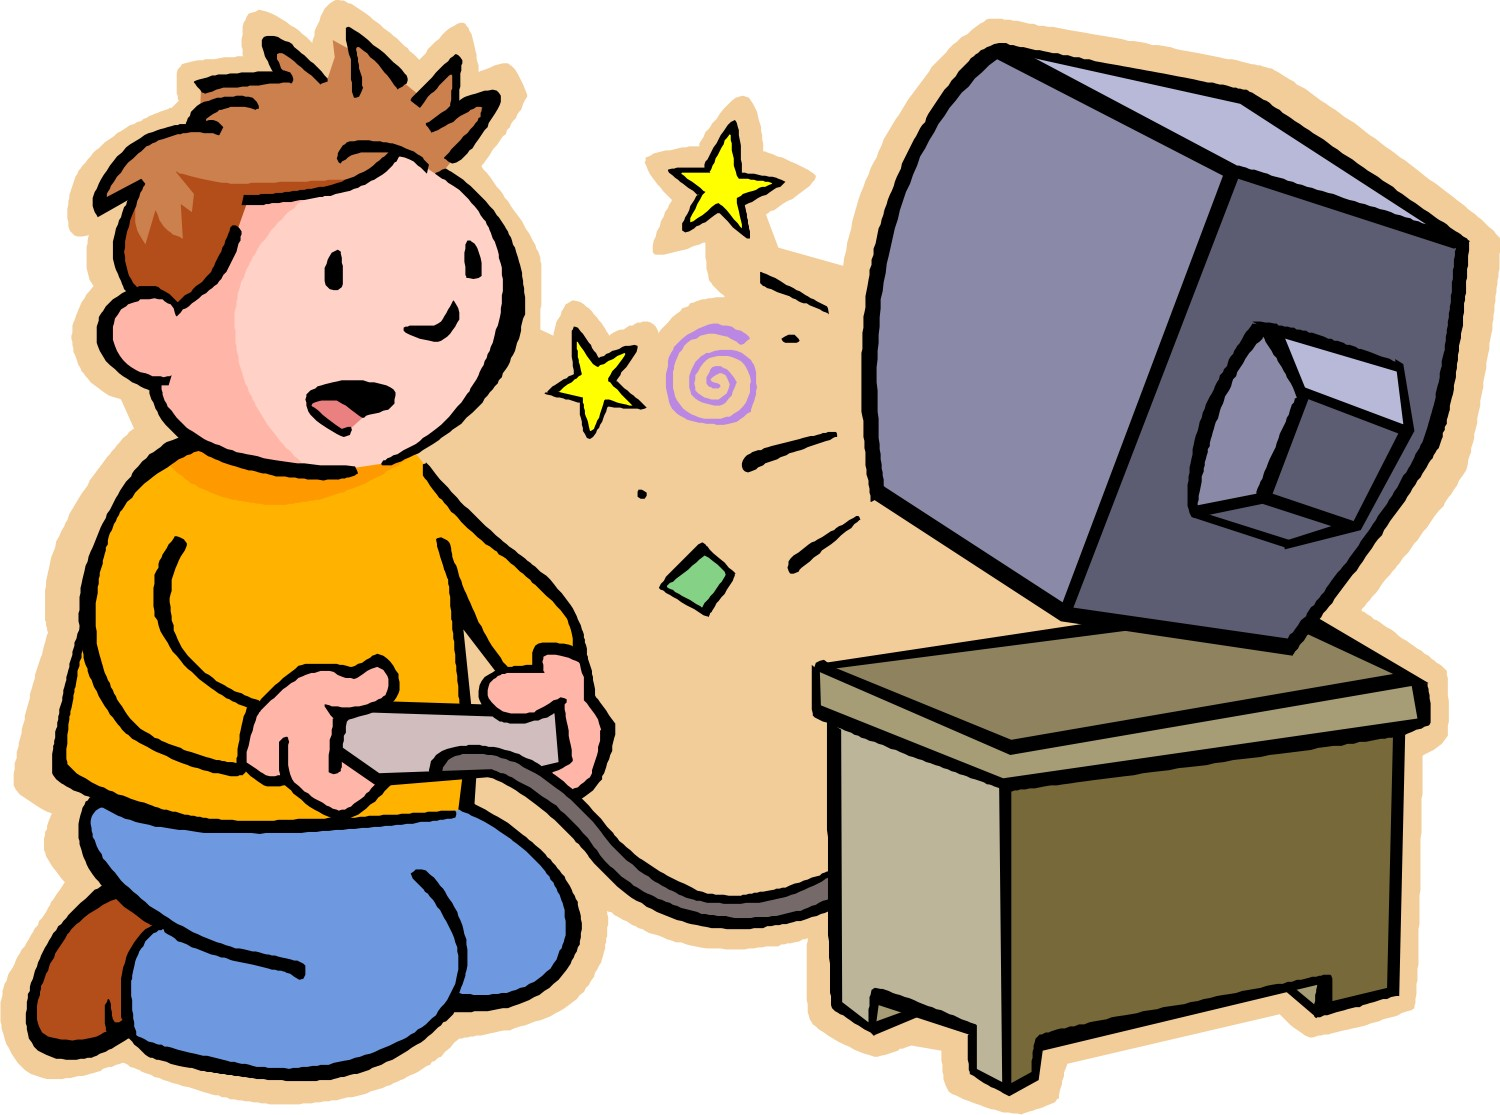 Video game clipart pictures clipart black and white library Playing Video Games Clipart | Free download best Playing Video Games ... clipart black and white library